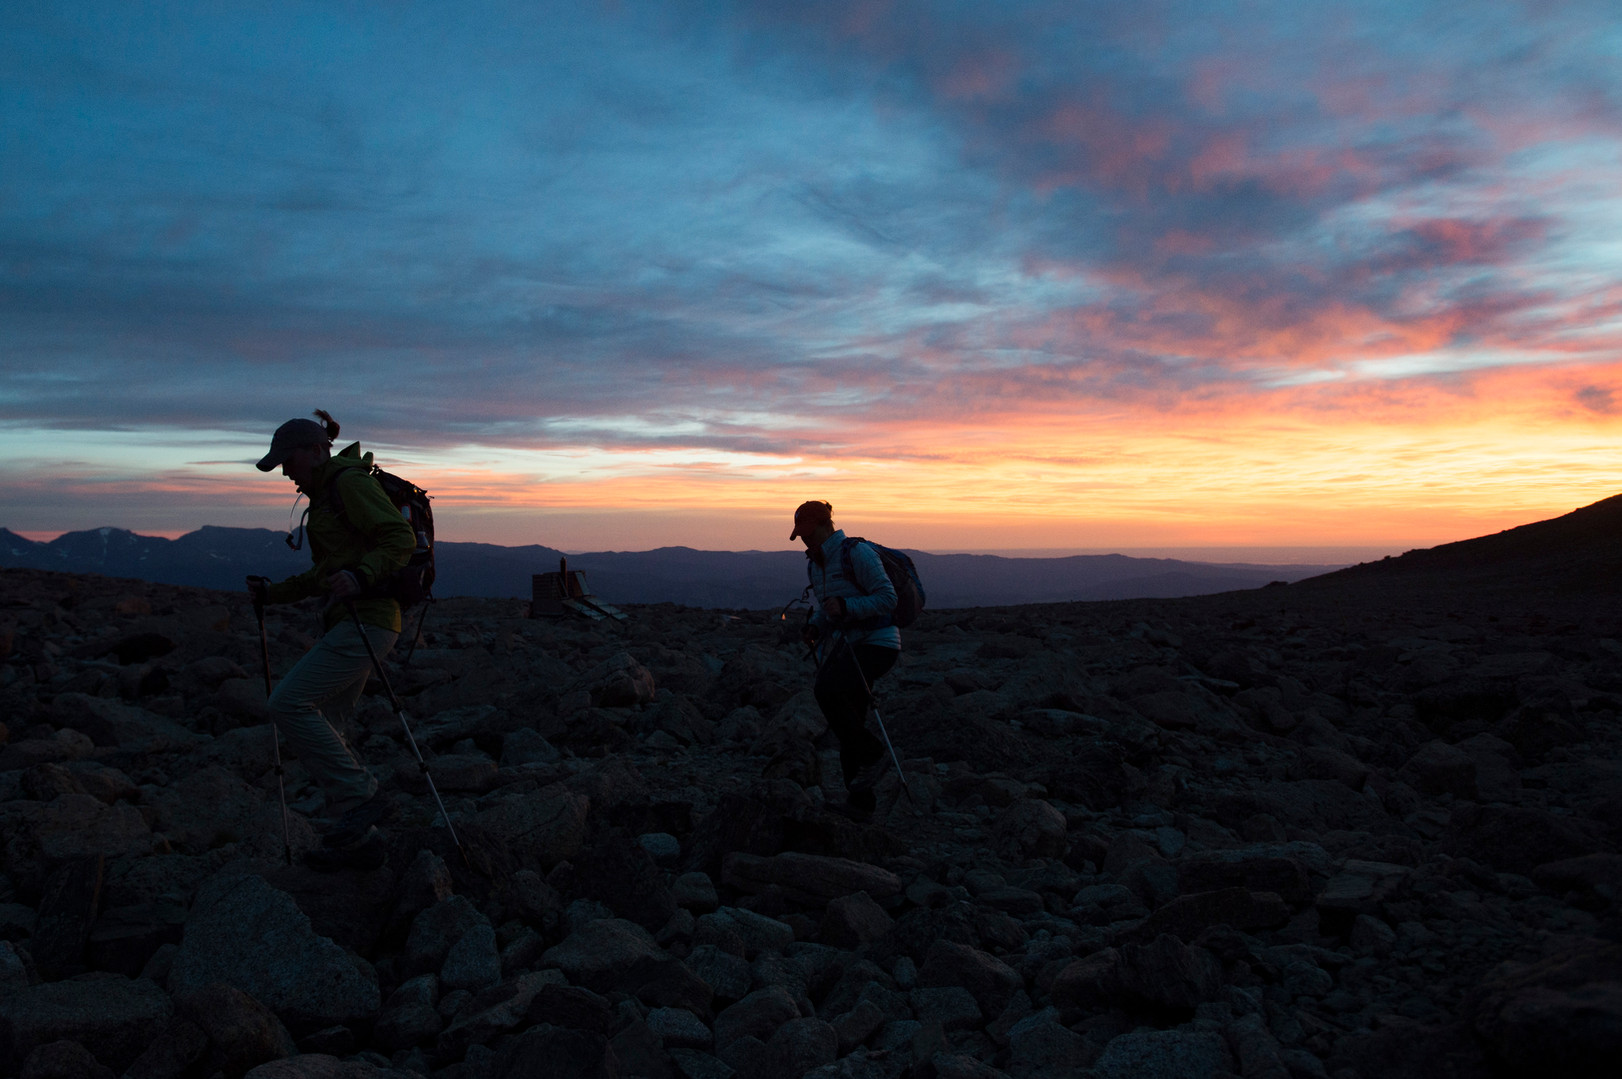 Climbers are silhouetted against a vibrant sunrise in the boulder field of Longs Peak in Rocky Mountain National Park on Friday, July 19, 2017.